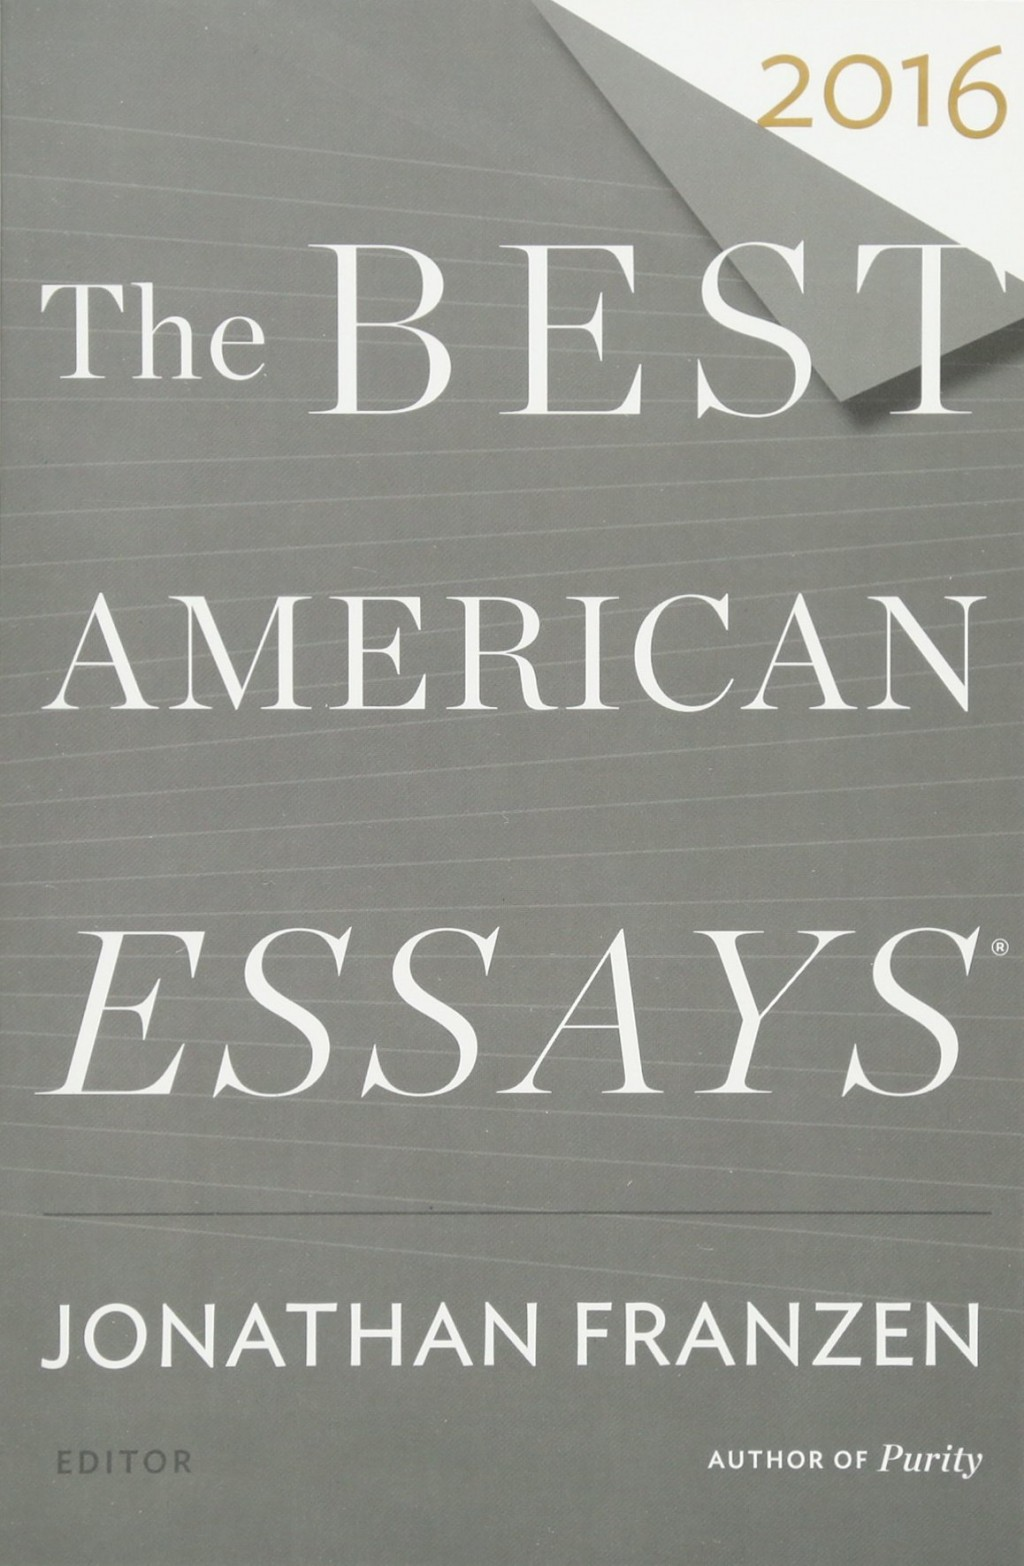 005 The Best American Essays Essay Example Wonderful Of Century Table Contents 2013 Pdf Download Large